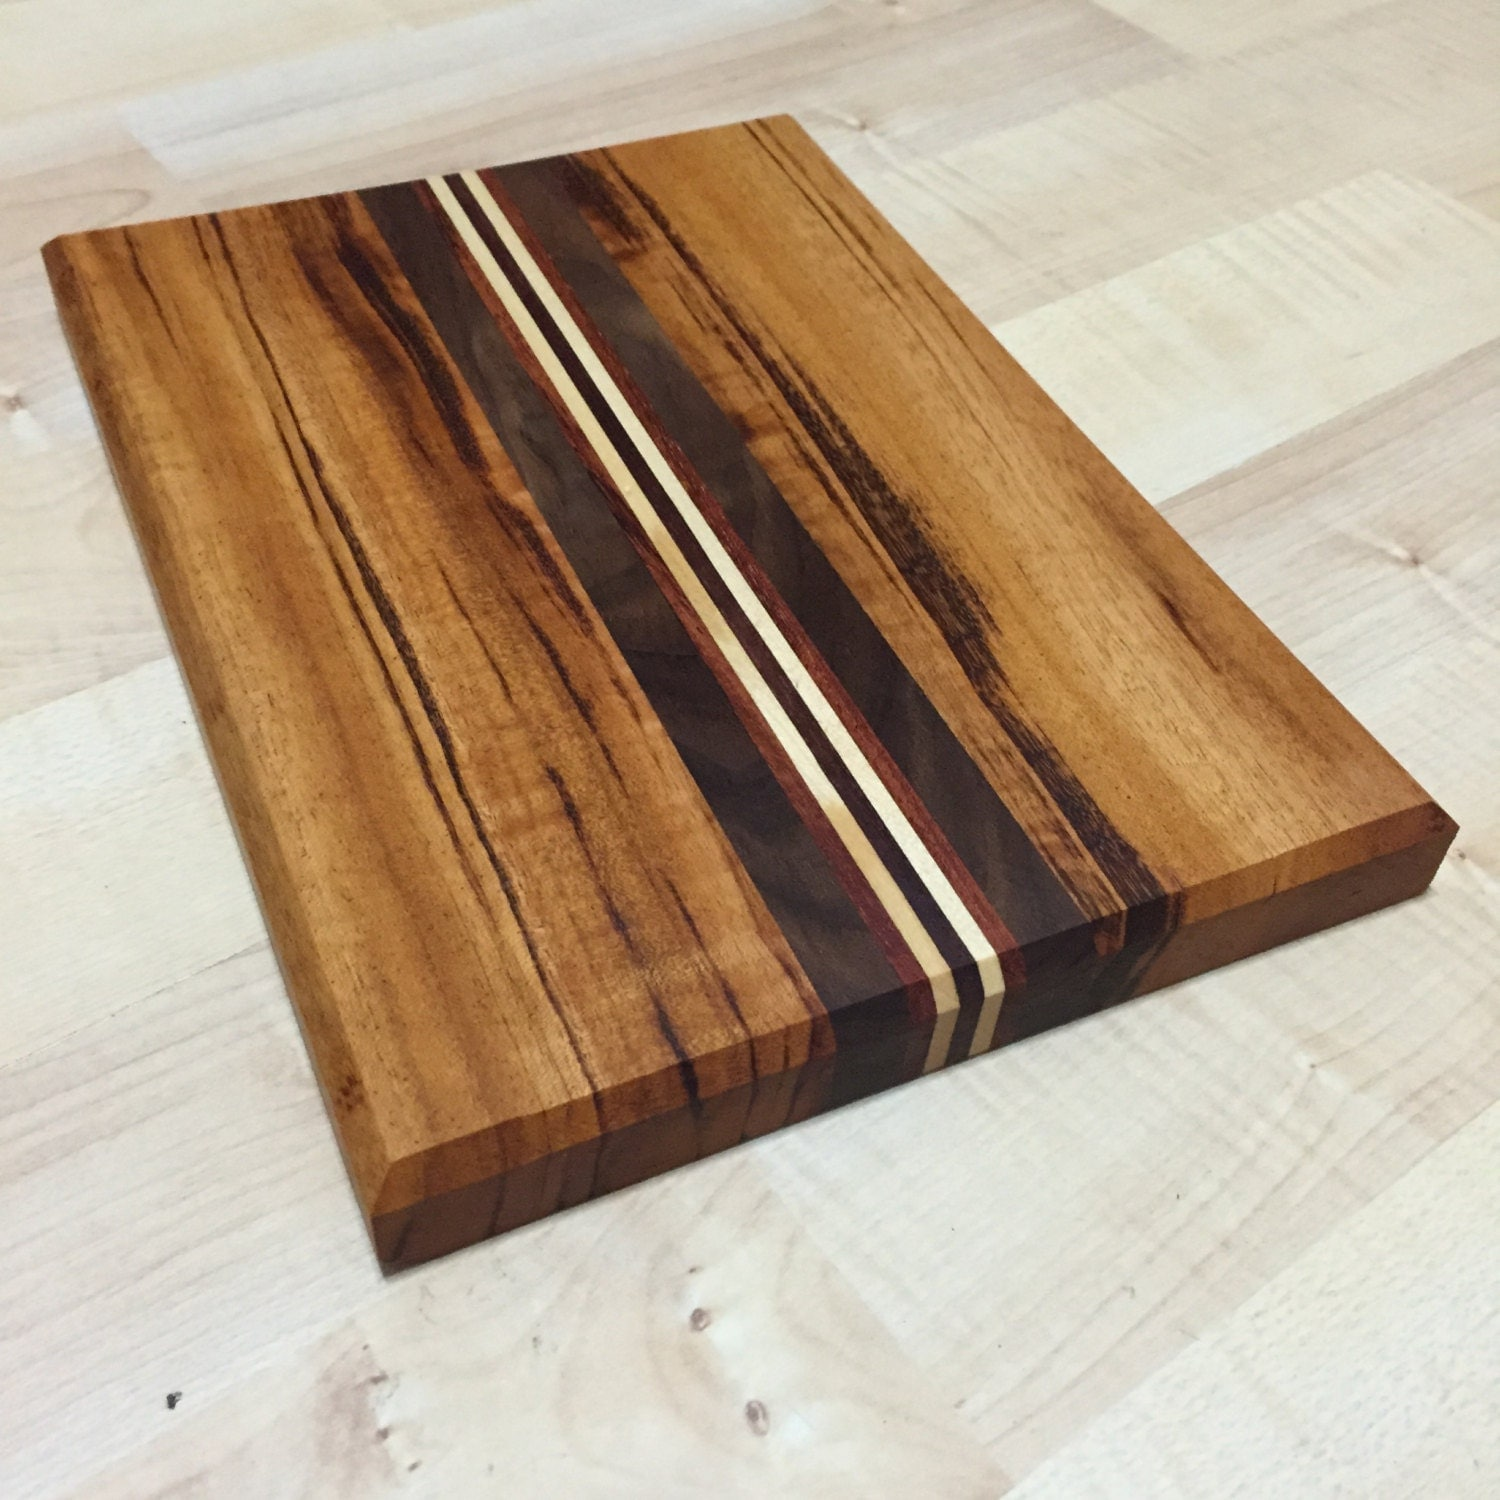 Shop our best selection of Wood Cutting Boards to reflect your style and inspire your home. Find the perfect cookware, housewares & specialty appliances at Hayneedle, where you can buy online while you explore our room designs and curated looks for tips, ideas & inspiration to help you along the way.